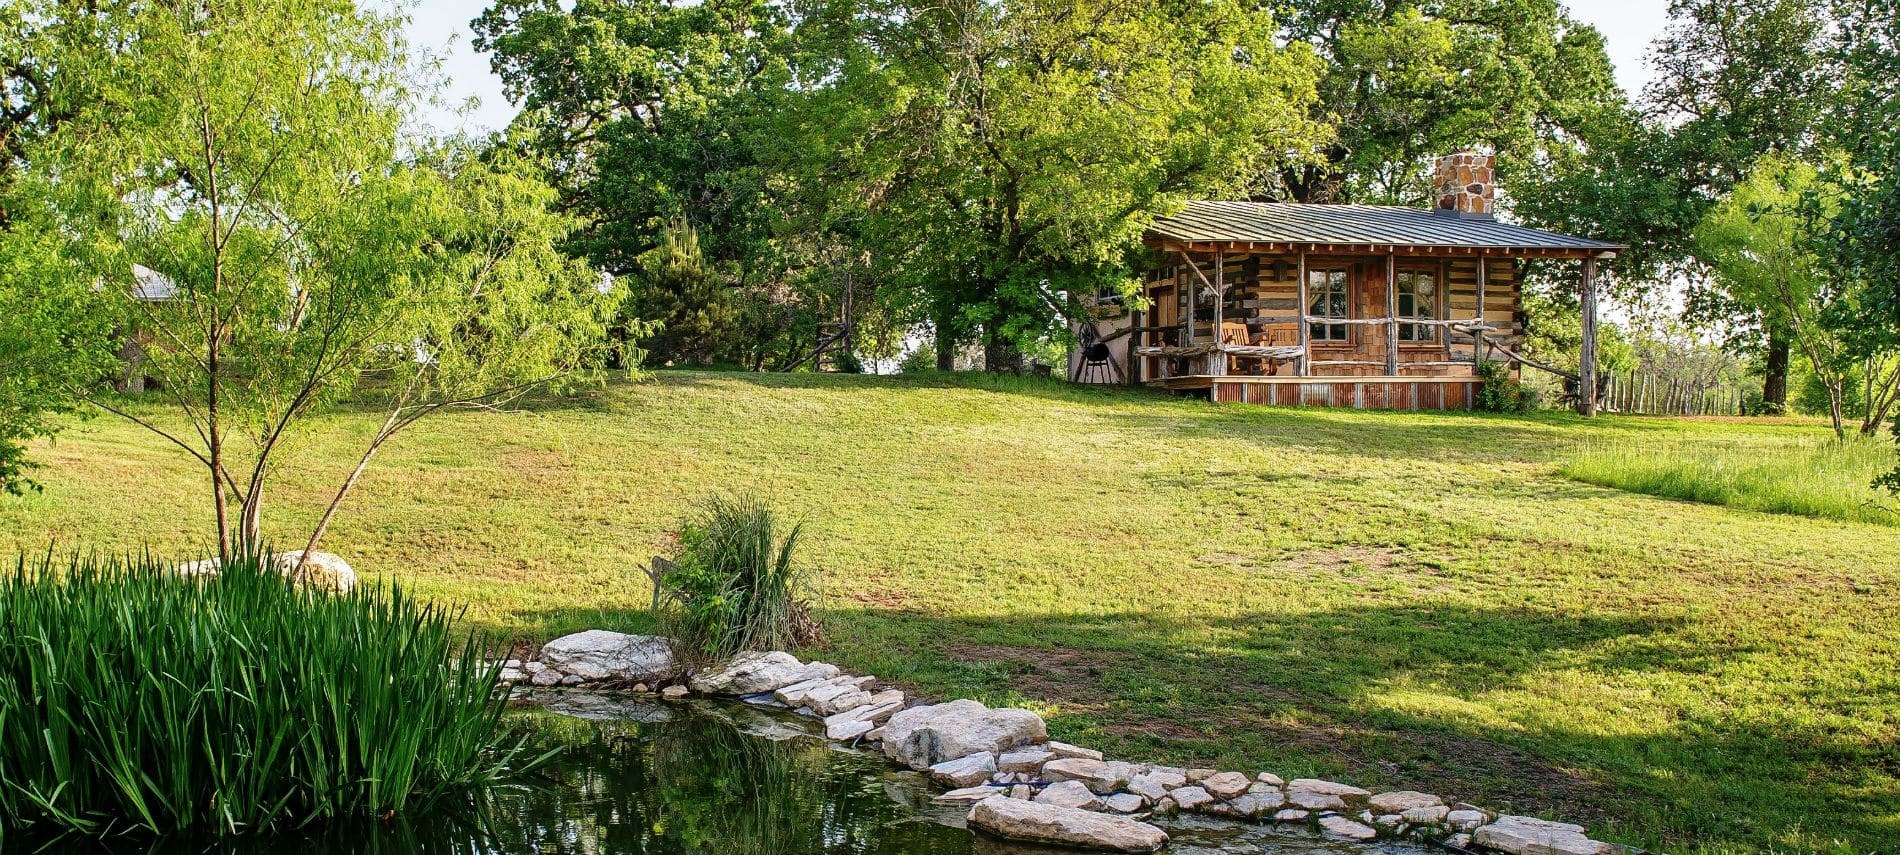 in small rent fredericksburg decoration home remodel tx attractive nifty cottage cabins with to ideas designing cottages